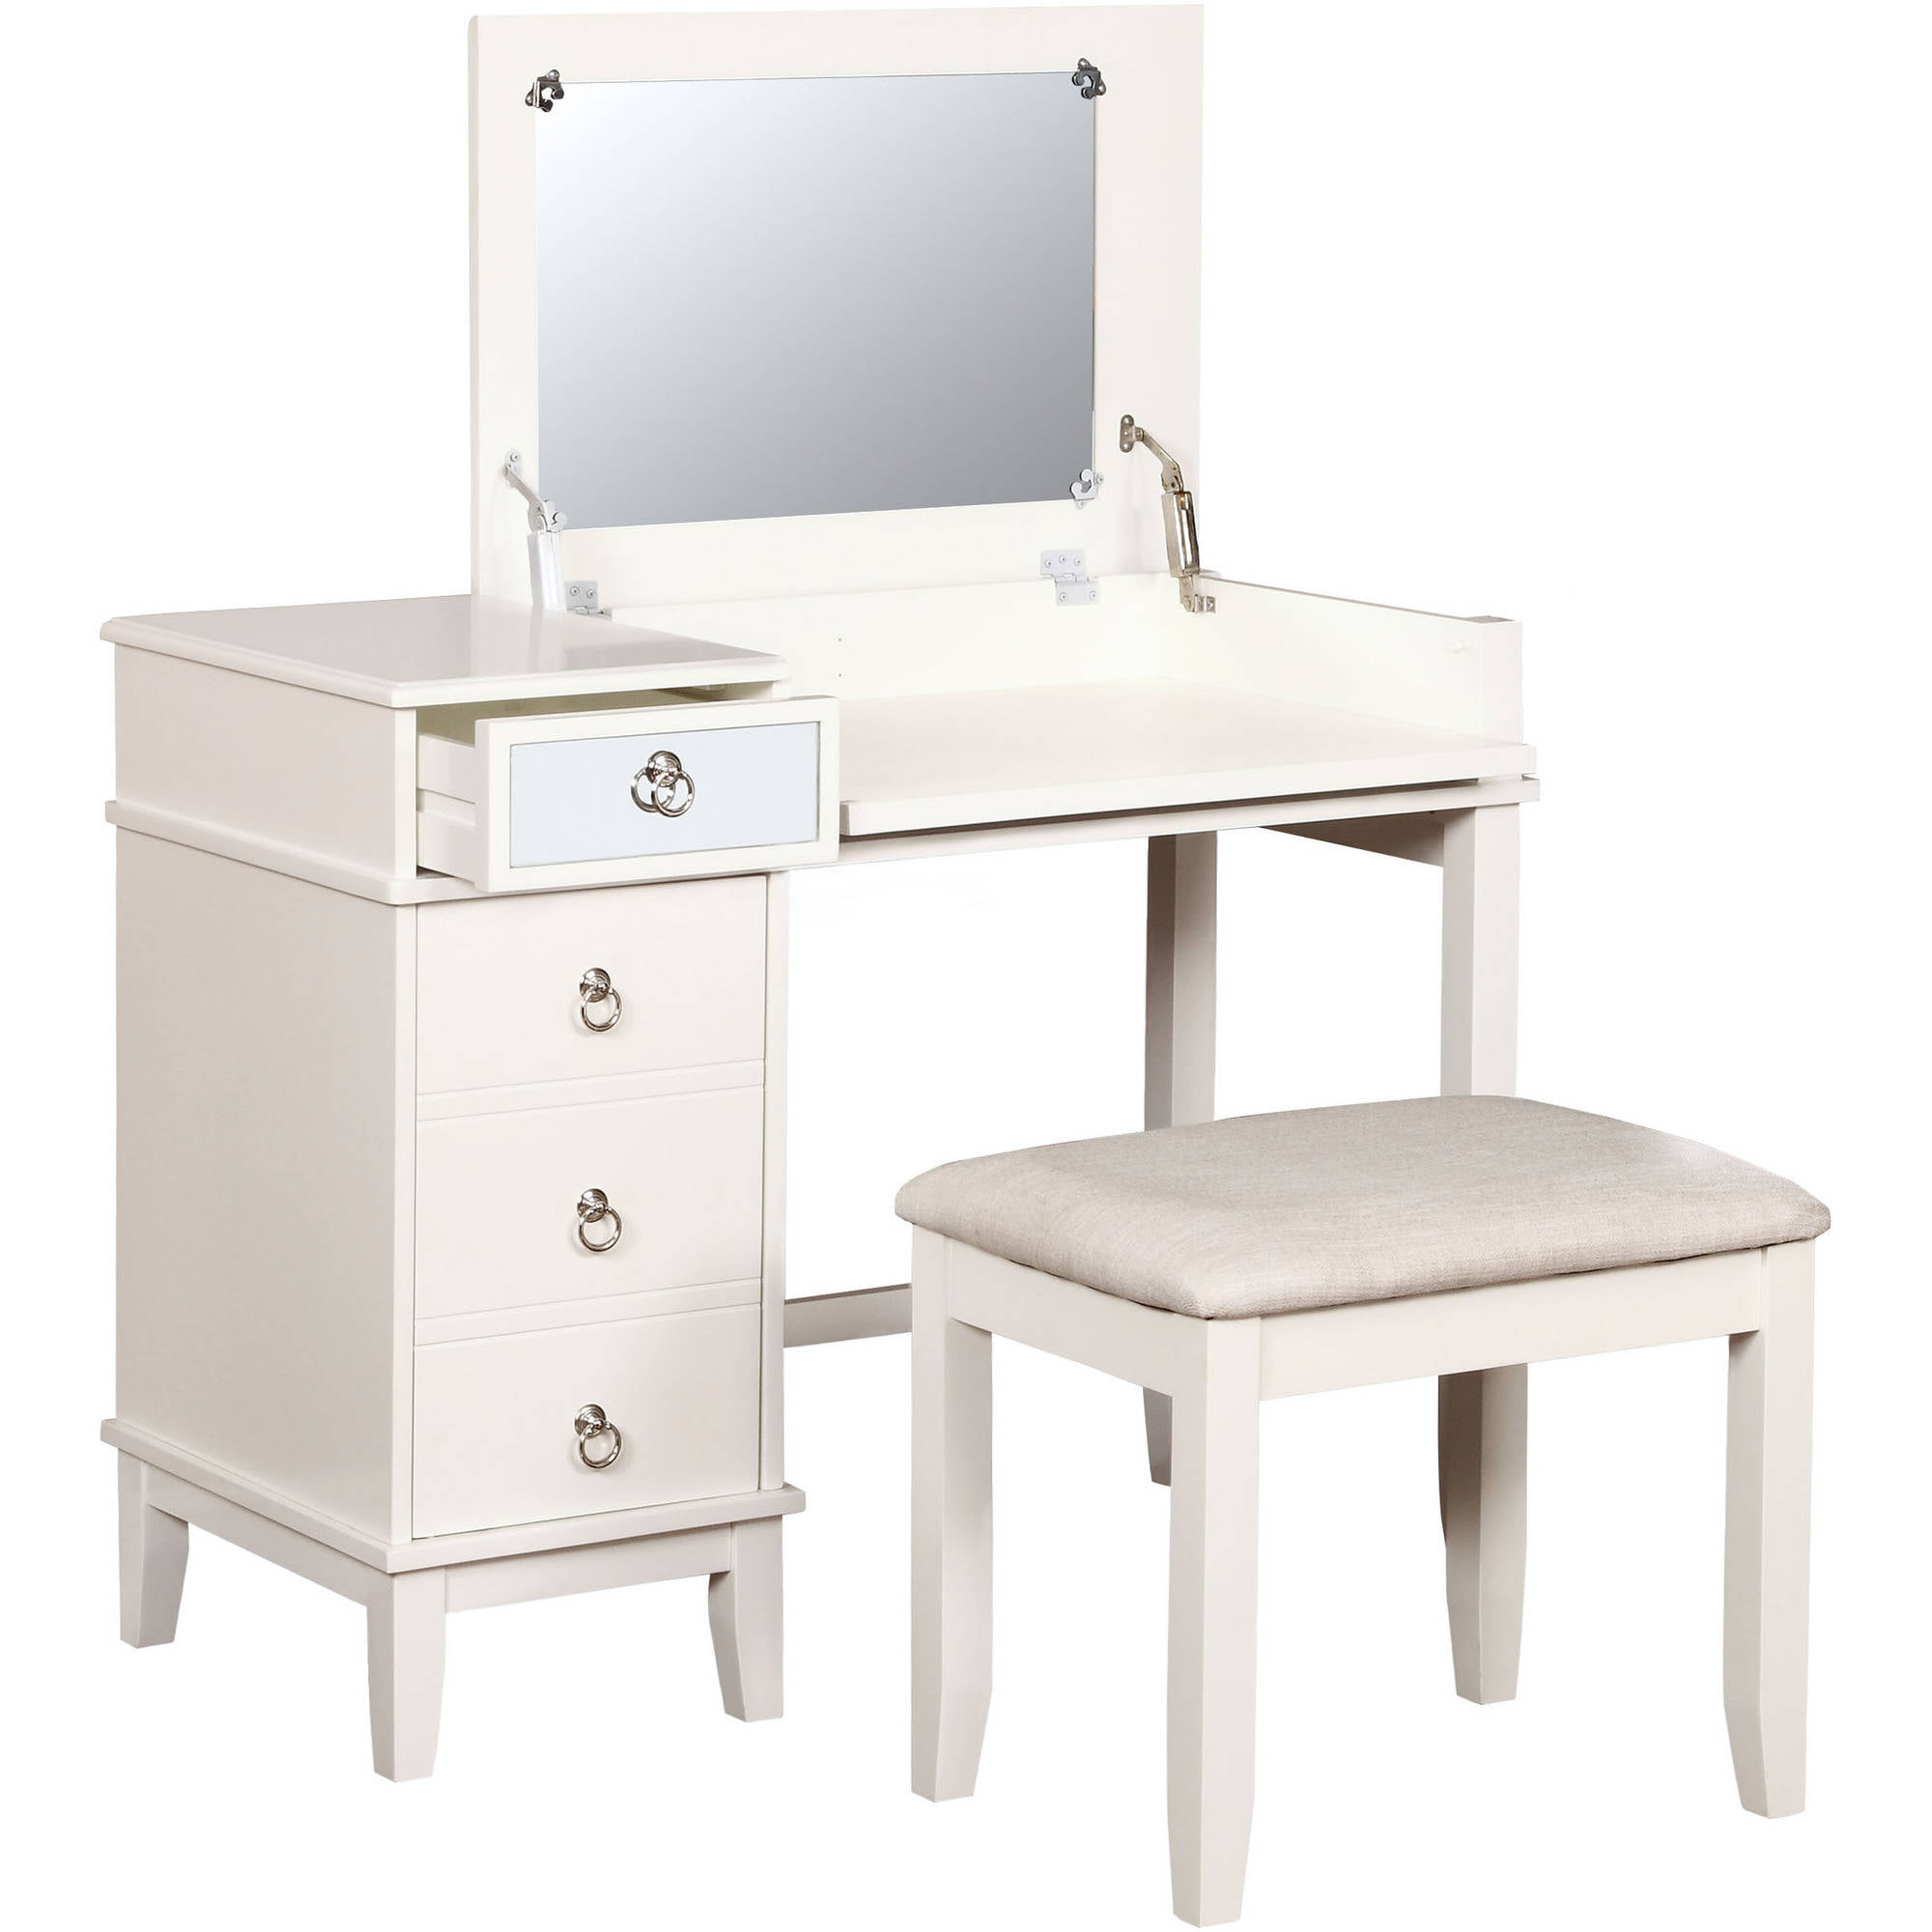 Bedroom Vanities   Walmart.com